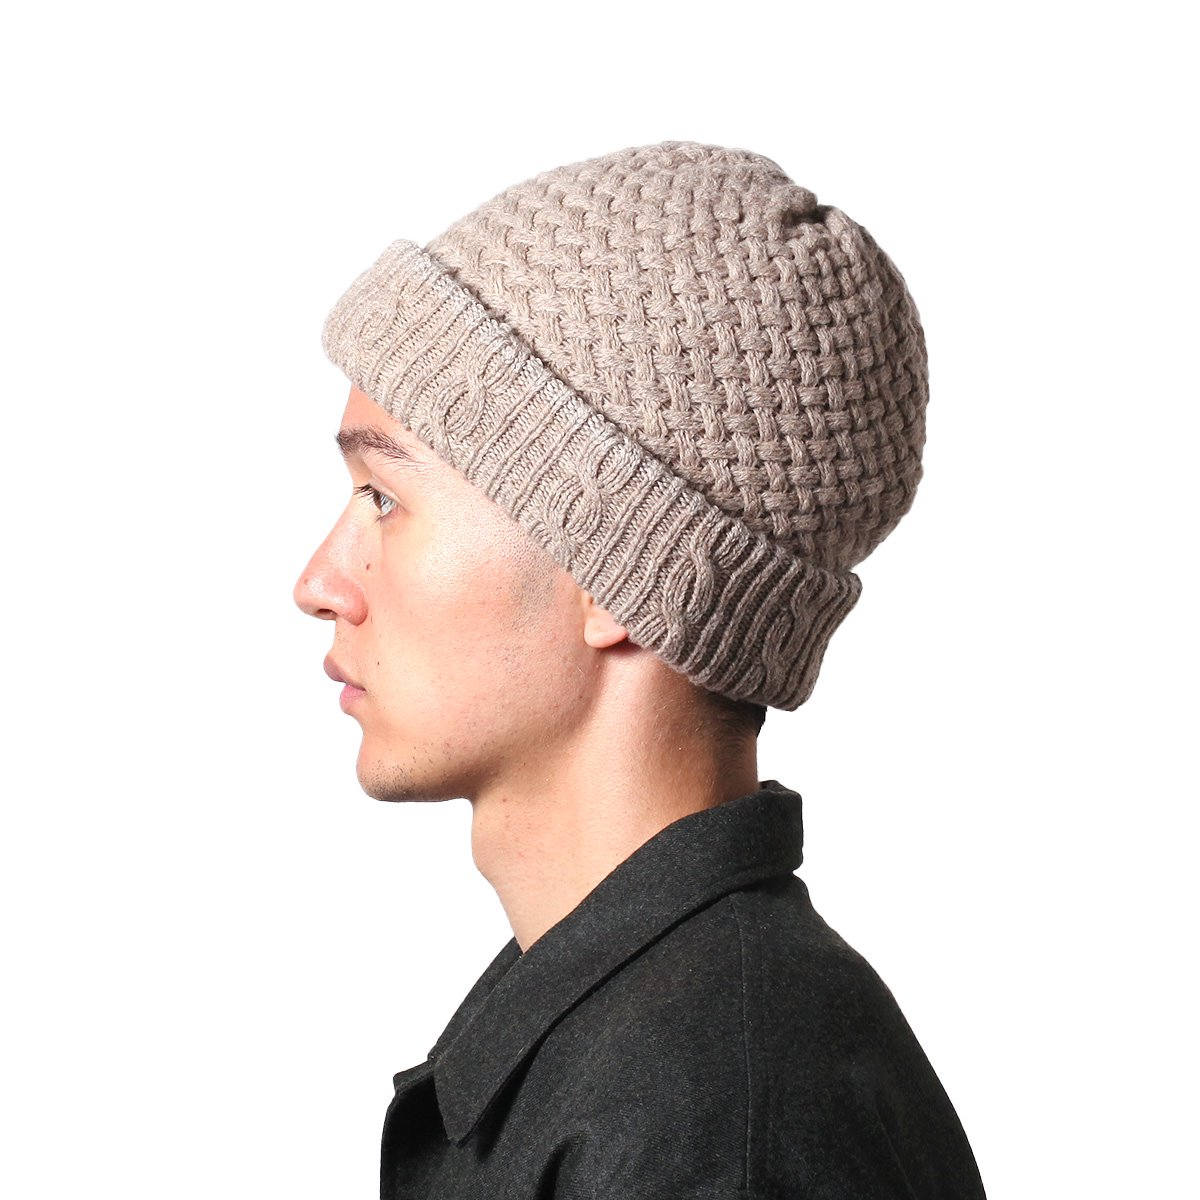 LIGHT-WEIGHT REVERSIBLE KNITCAP TYPE C 詳細画像7